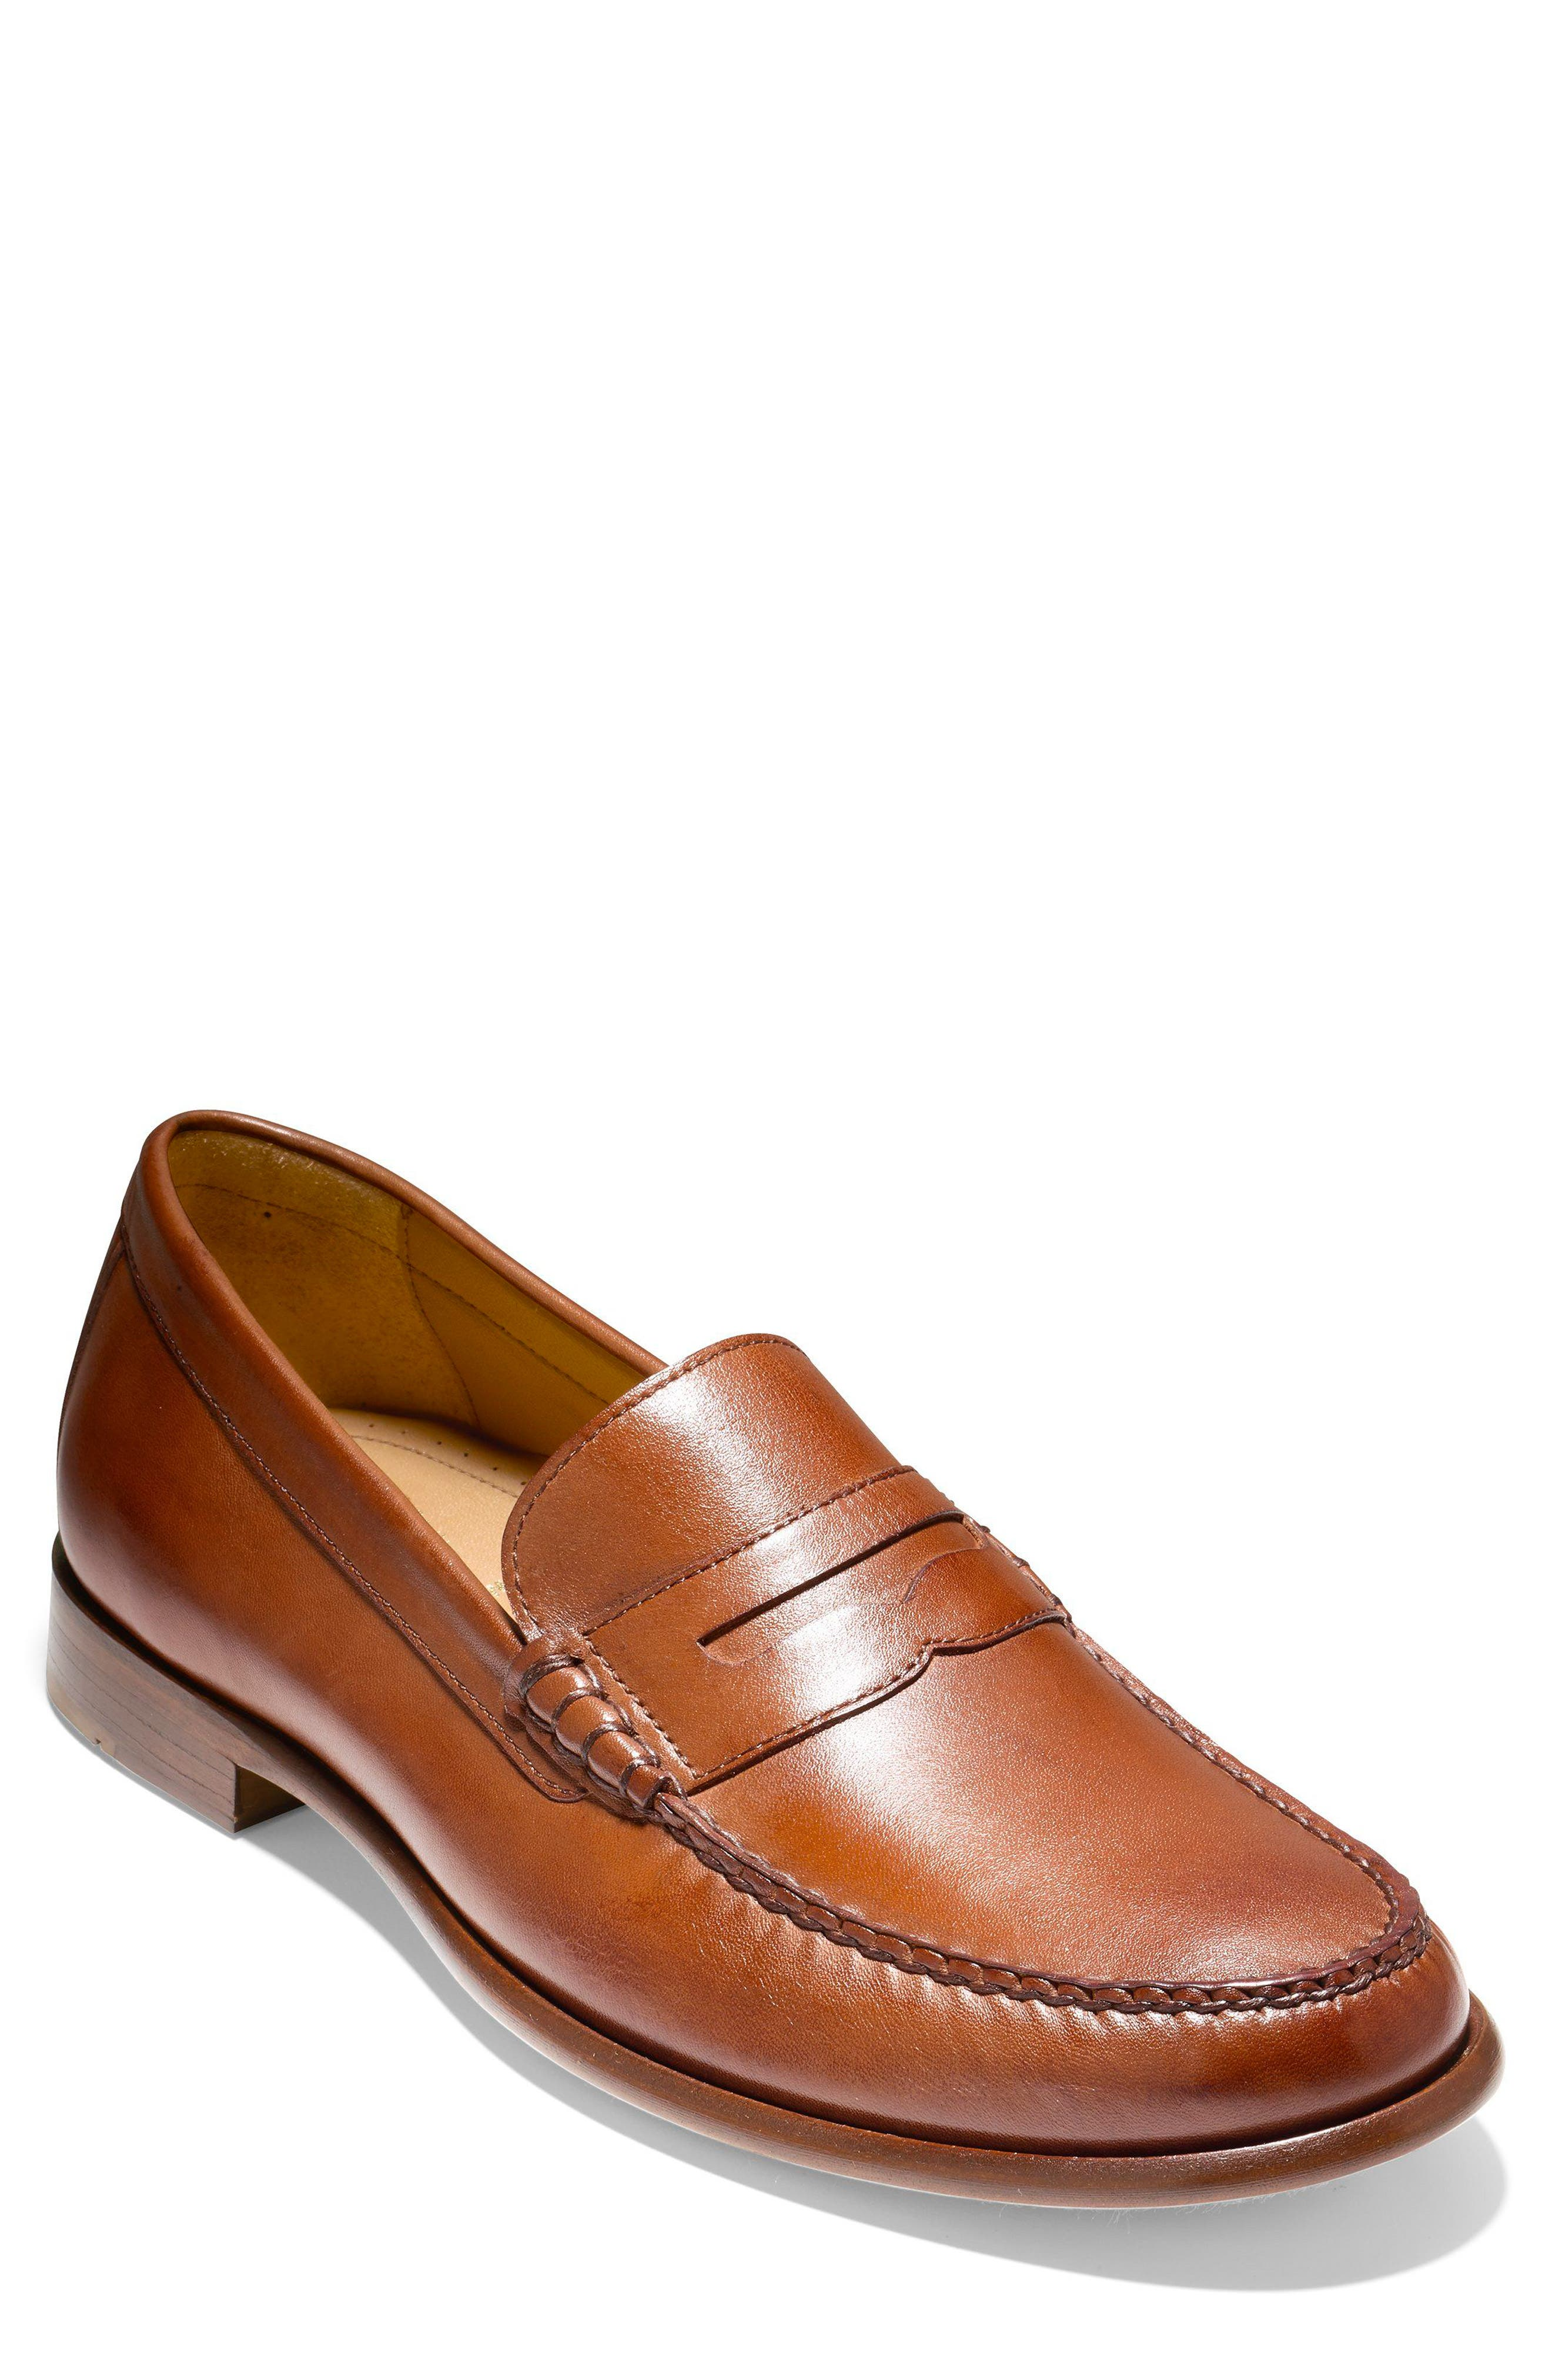 Pinch Penny Loafer,                         Main,                         color, BRITISH TAN LEATHER